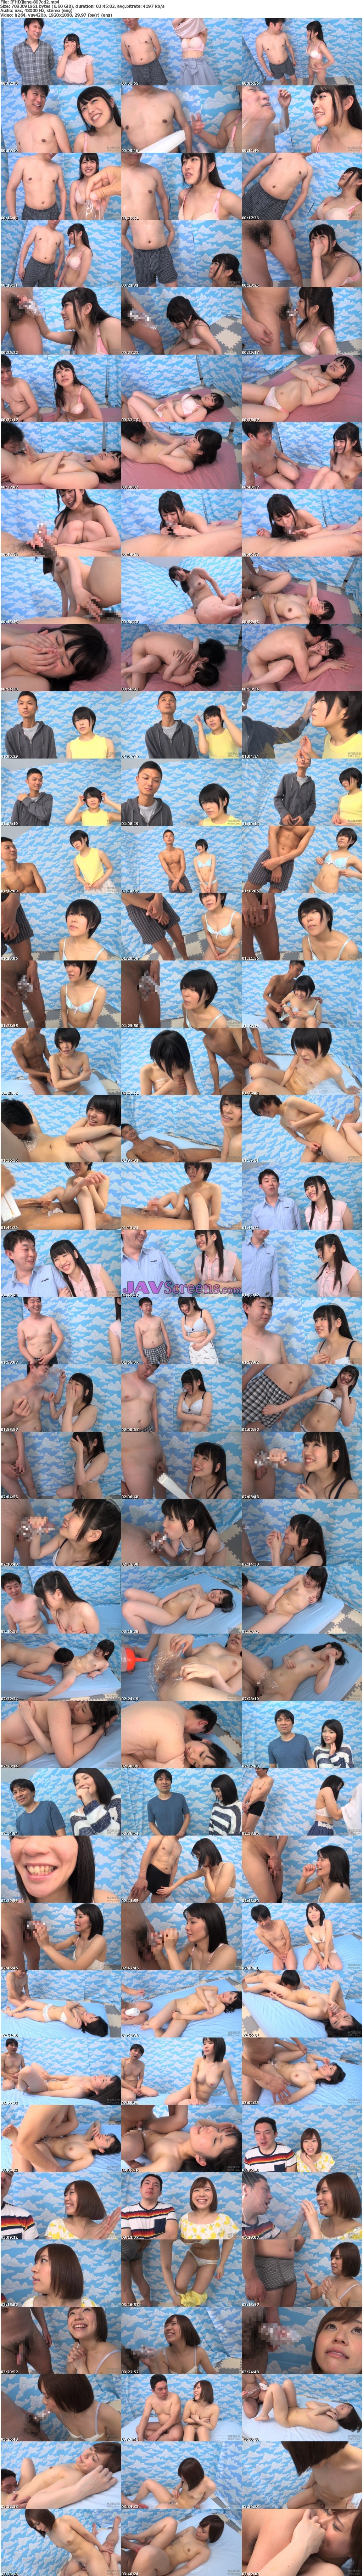 IENE-807B.jpg - JAV Screenshot